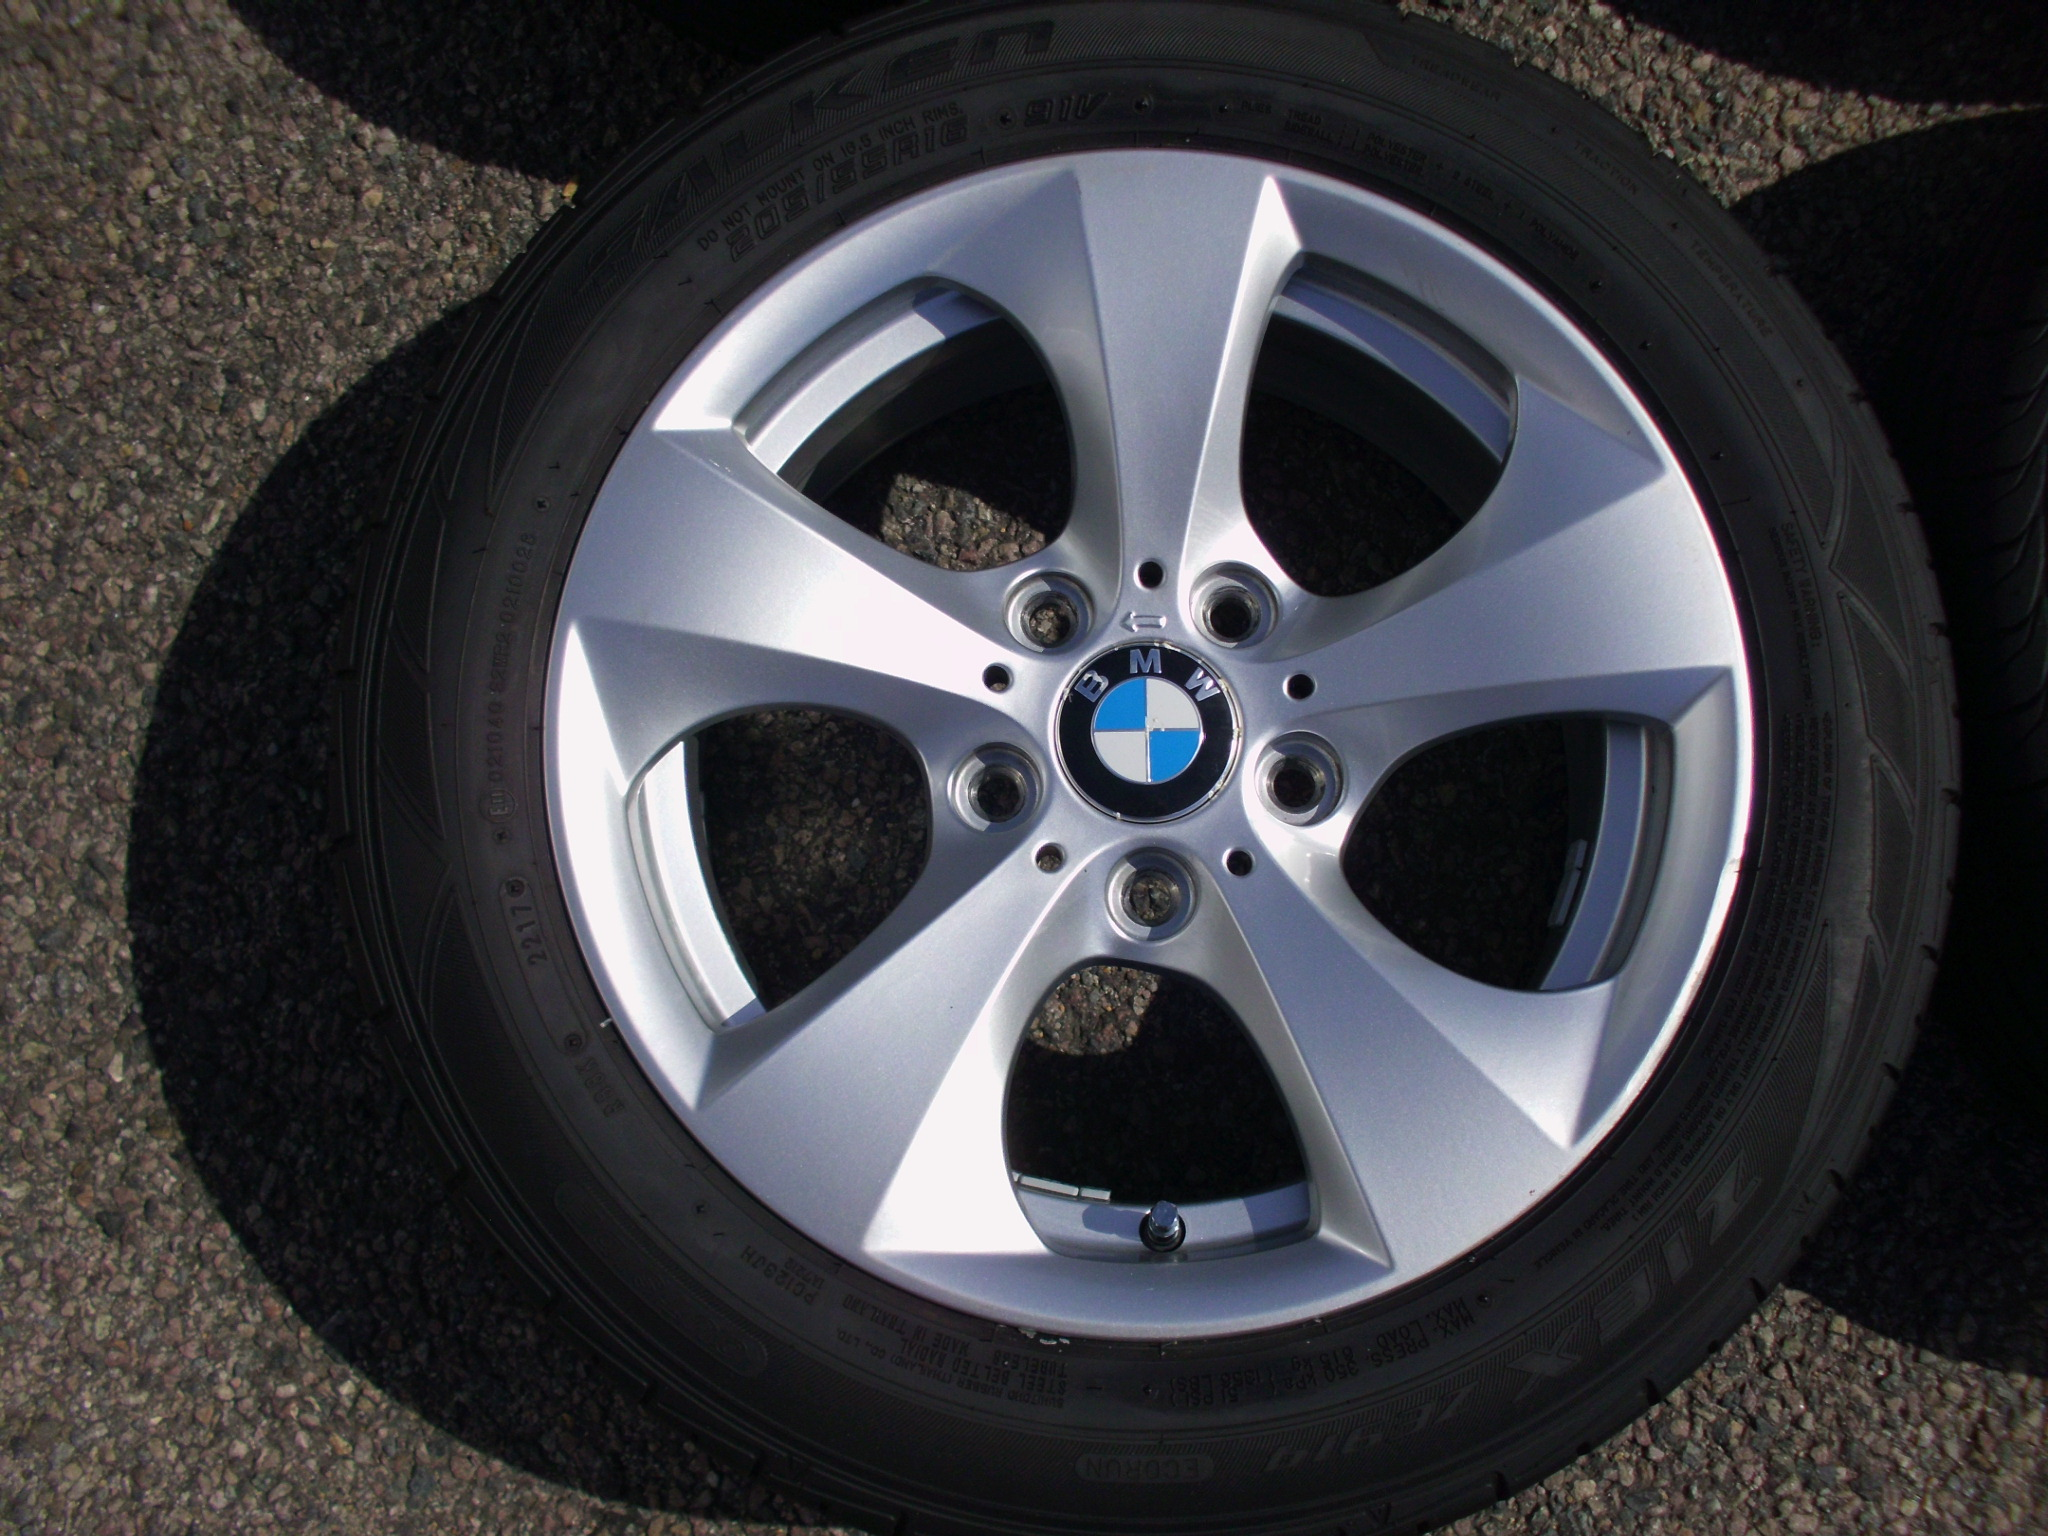 "USED 16"" GENUINE BMW STYLE 306 TURBINE DIRECTIONAL ALLOY WHEELS, GOOD CONDITION INC VG NON RUNFLAT TYRES"